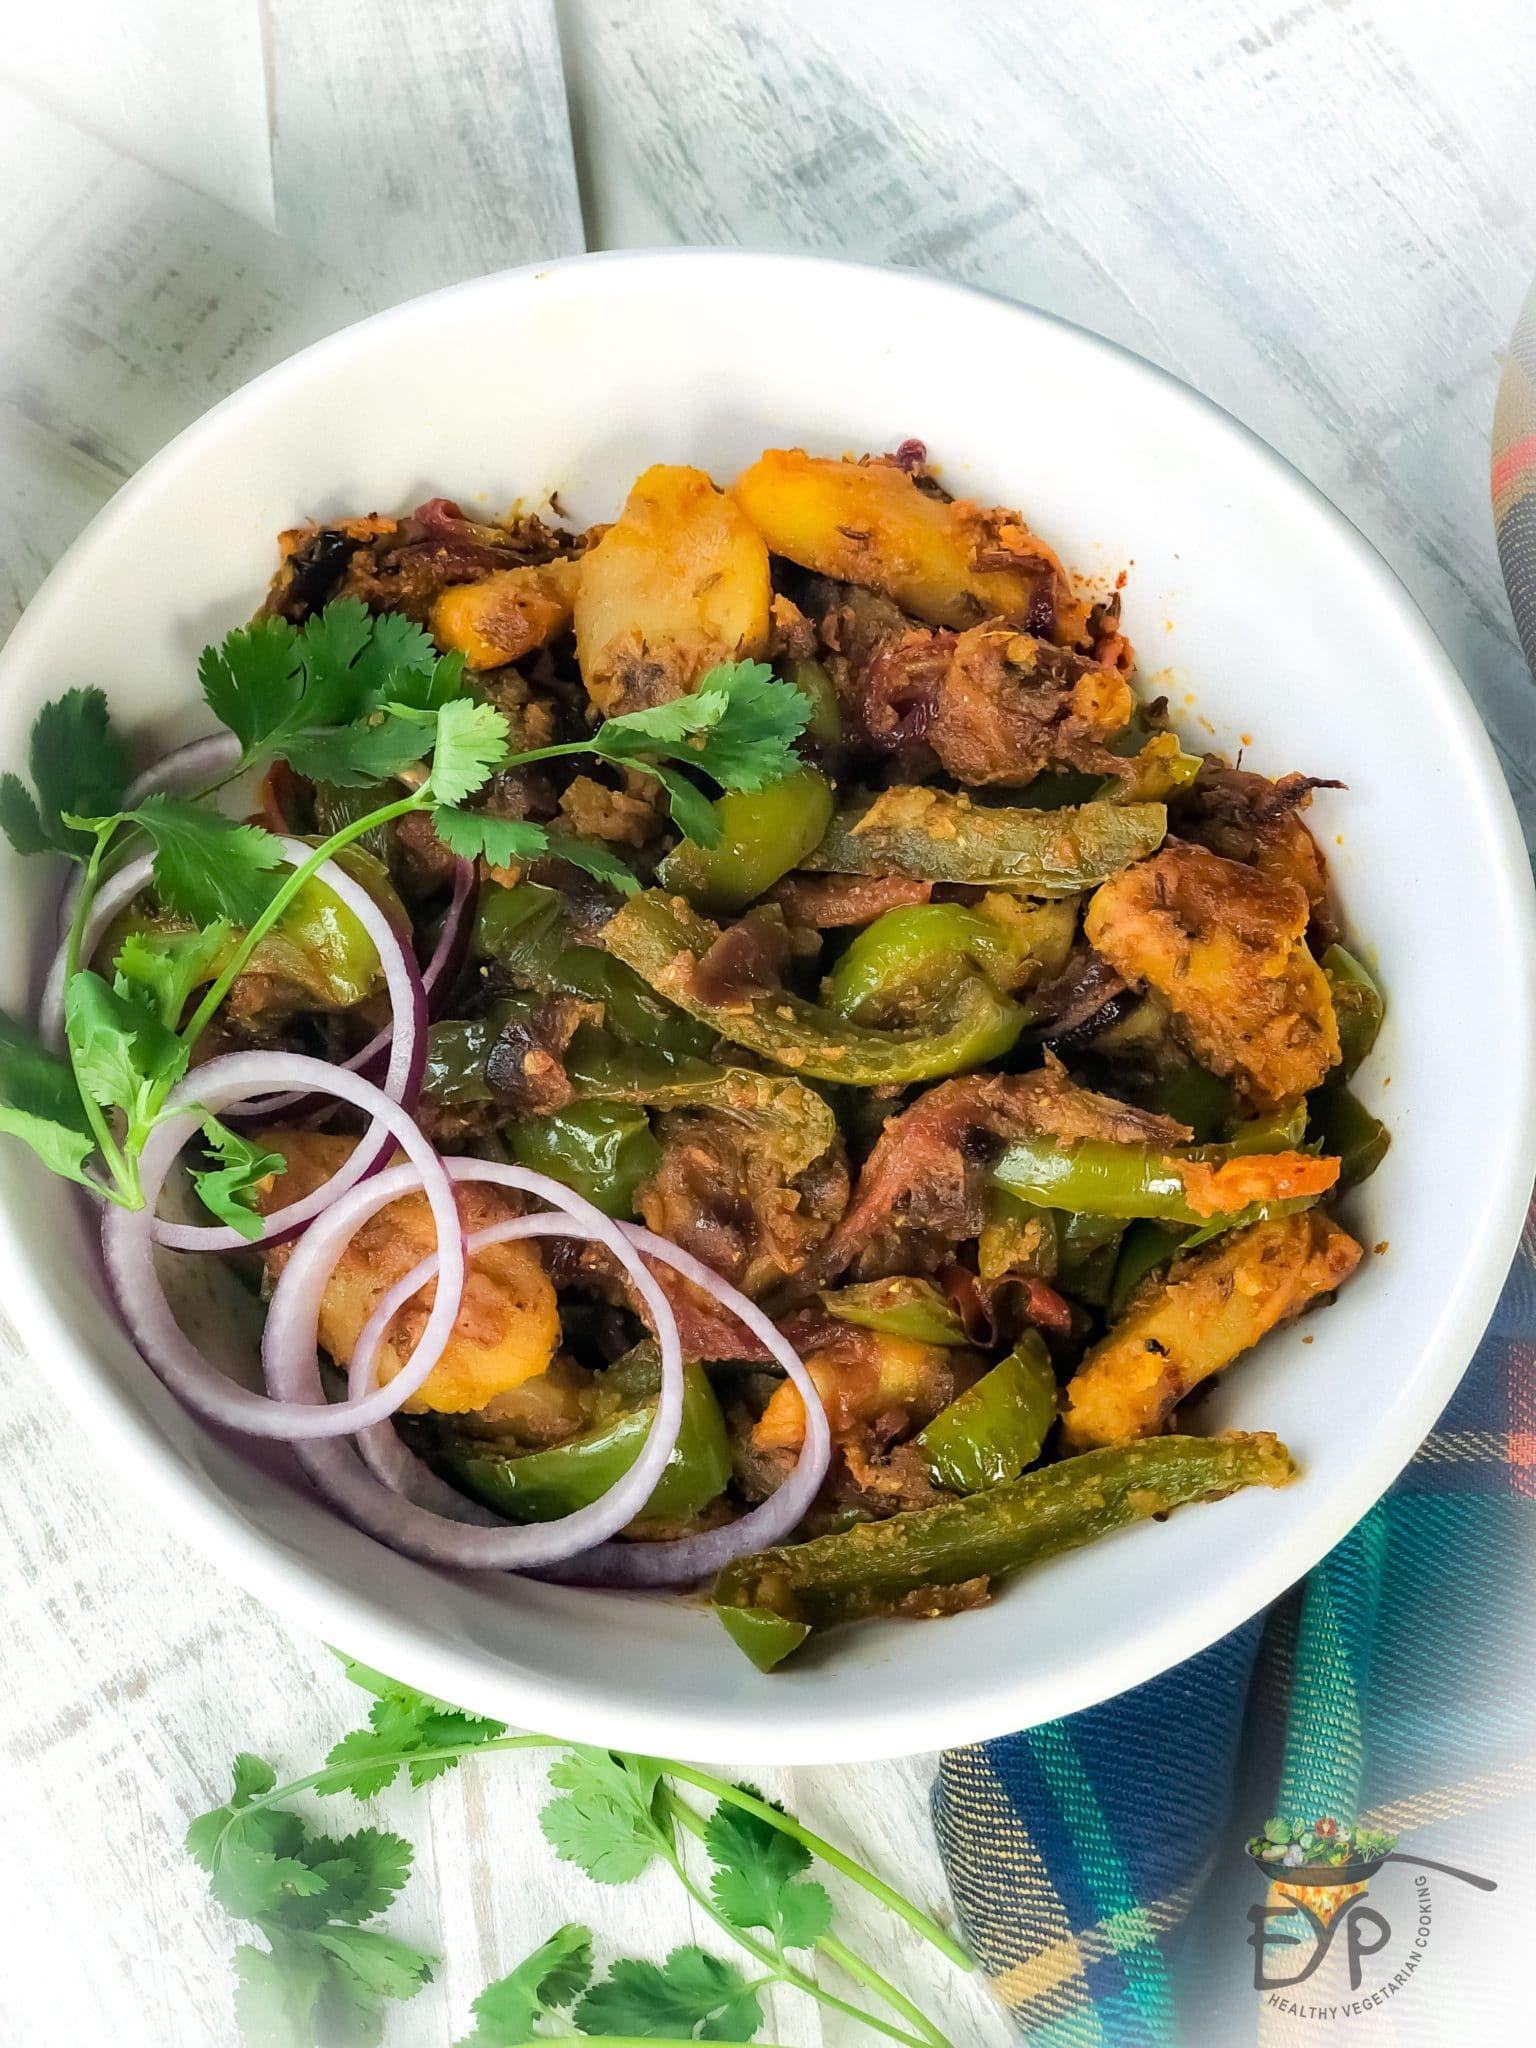 Aloo Shimla Mirch - Bell Pepper Potatoes Stir-Fry from EYP - Aloo Shimla Mirch or Bell Pepper Potatoes Stir-Fry is a very popular Day-to-Day recipe, which is very simple and quick to make but still tastes great.